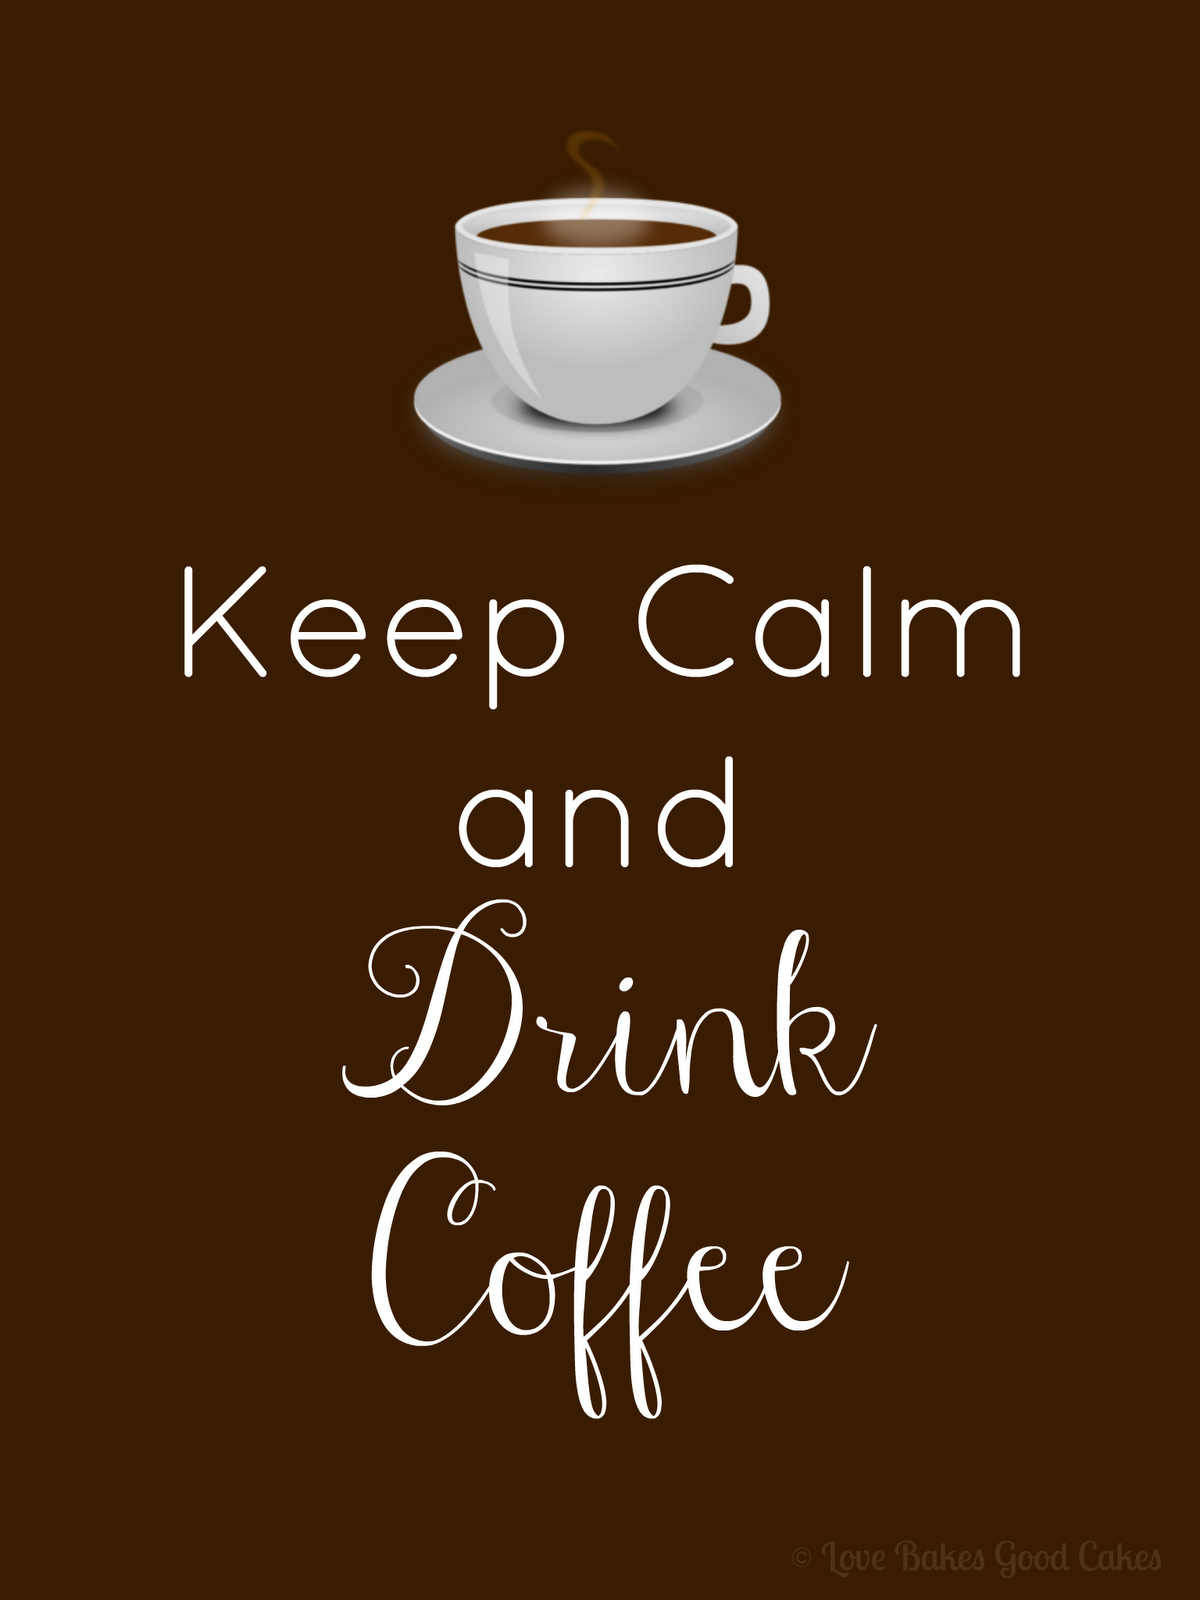 Quotes About Coffee And Chocolate 29 Quotes